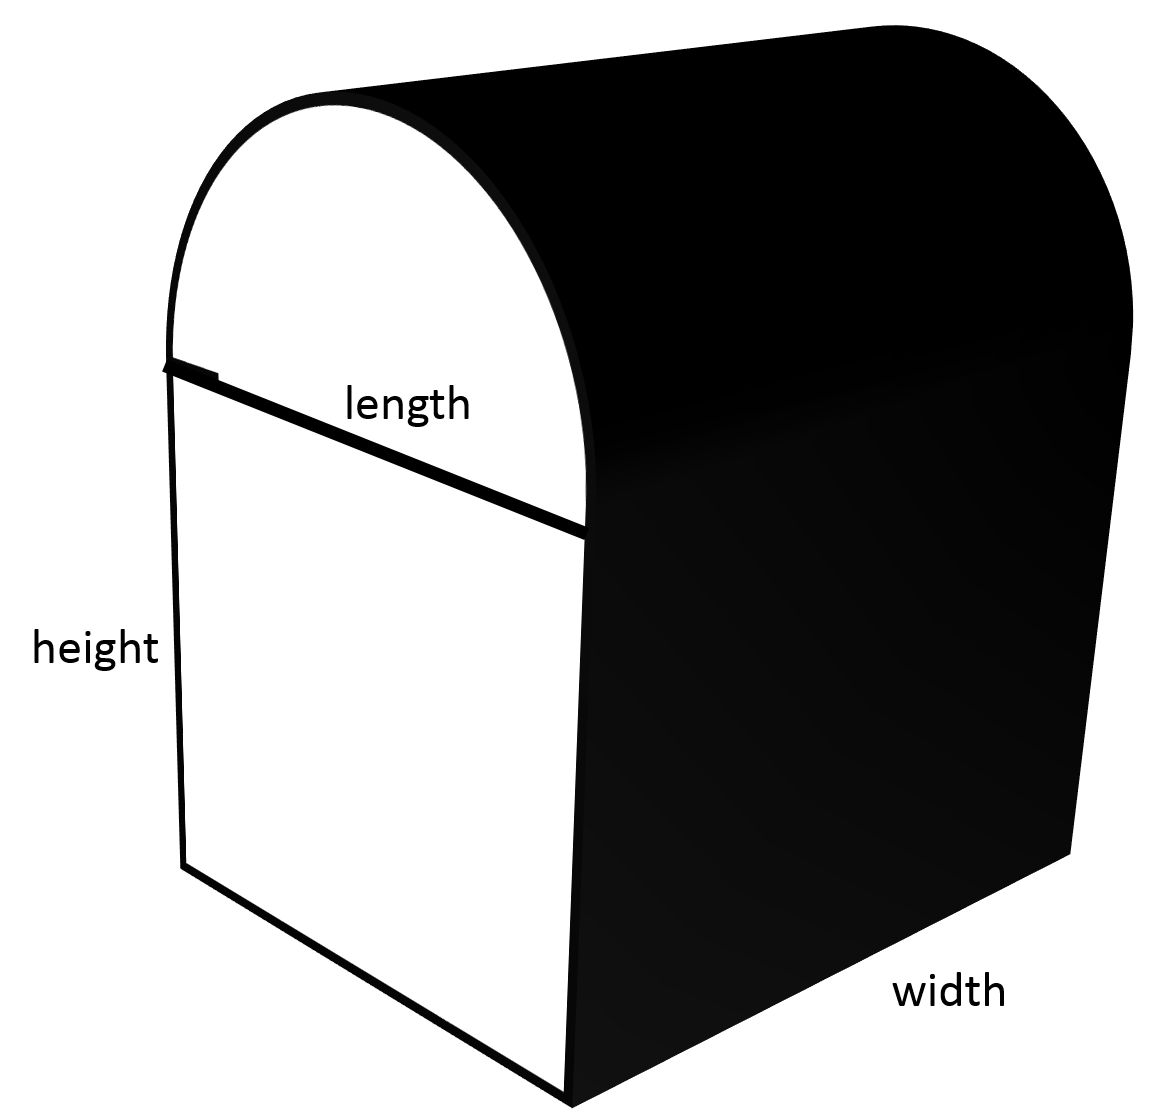 In Order To Find The Volume Of The Figure, We Will First Need To Find The  Volumes Of The Rectangular Prism And The Half Cylinder